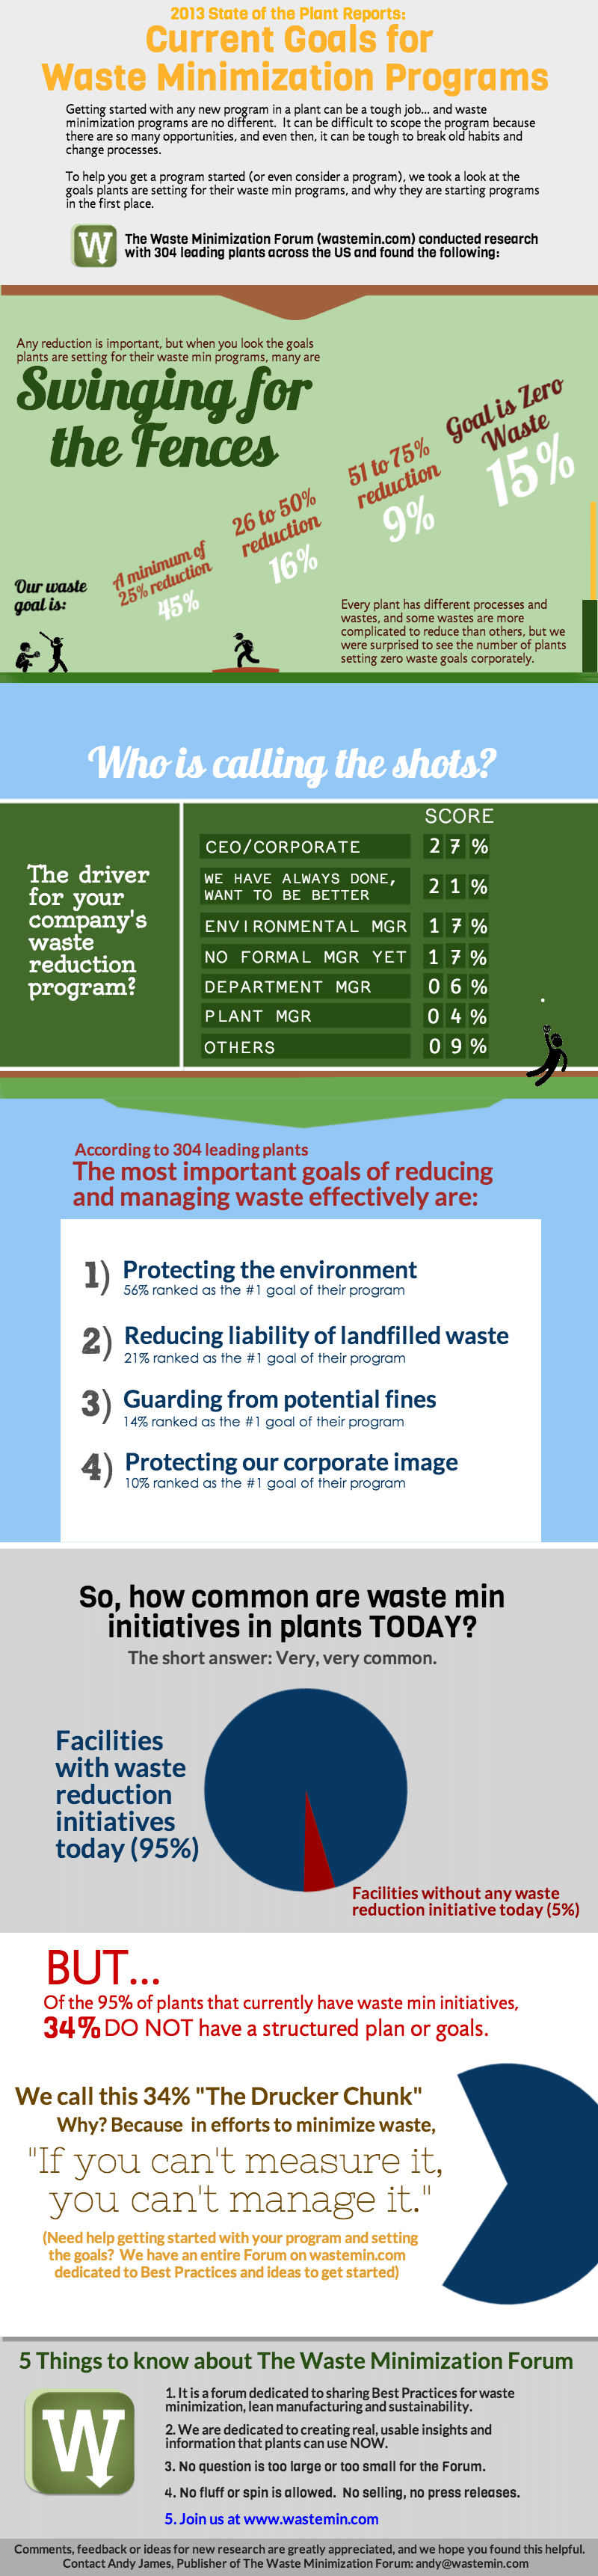 Current Goals for Waste Minimization Programs Infographic.png